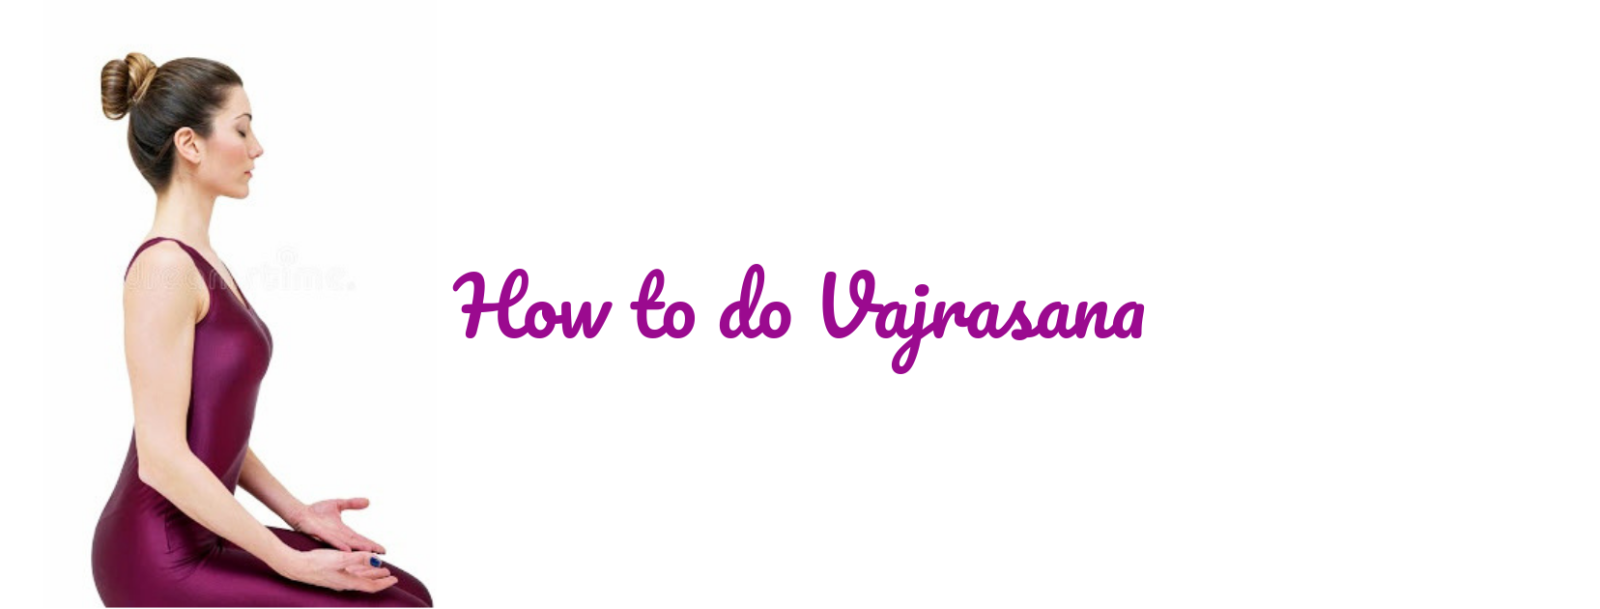 Featured image for how to do Vajrasana.